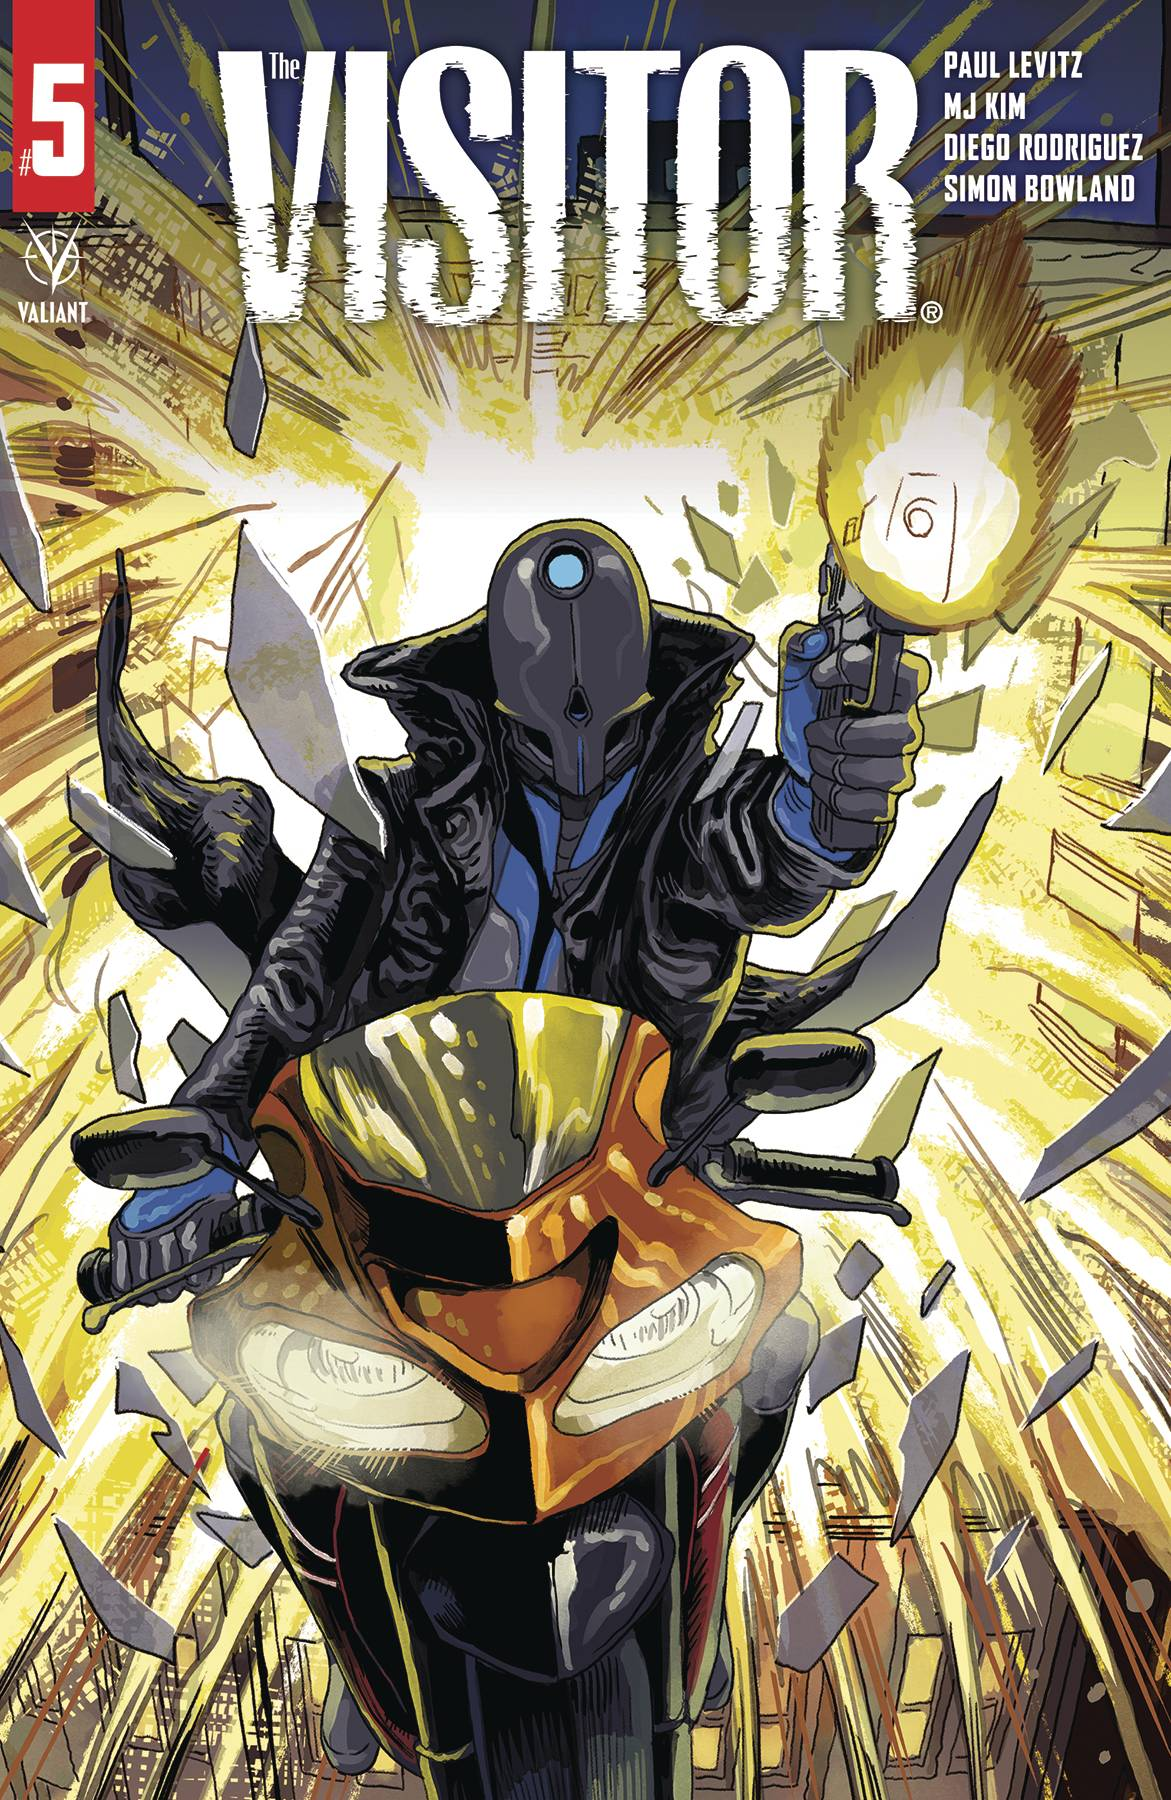 Valiant Entertainment & June 2021 Solicitations Spoilers: Pandemic Delayed The Visitor Ends! What's Next For Paul Levitz?